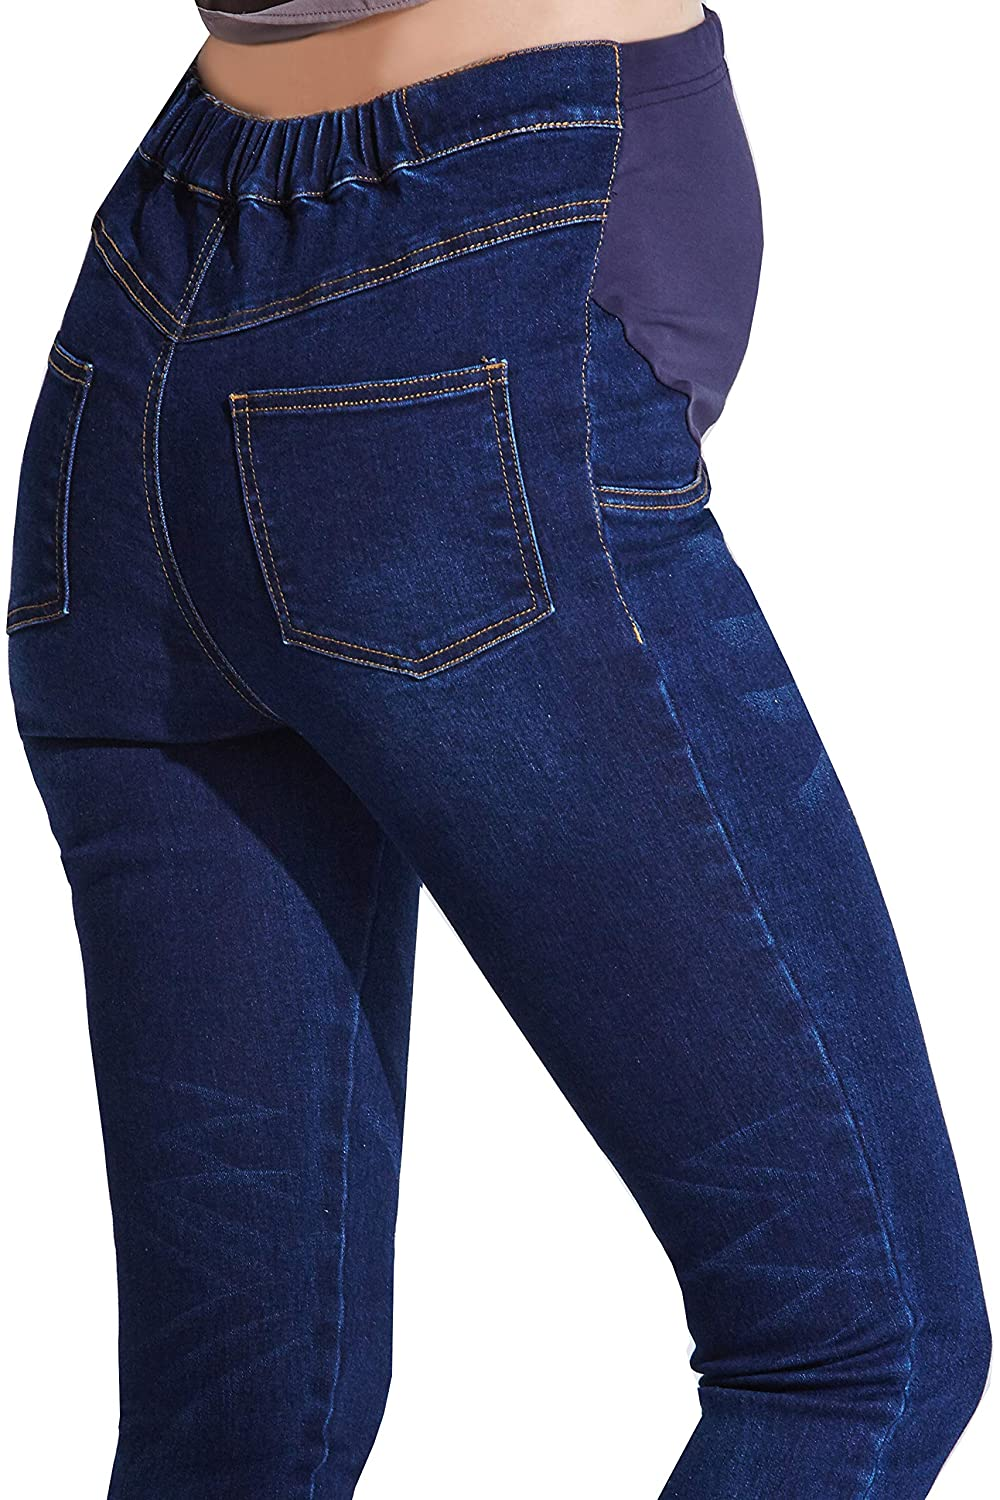 Sweet Mommy Maternity Super Stretch Vintage Denim Skinny Womens Jeans Ankle Length Blue LL